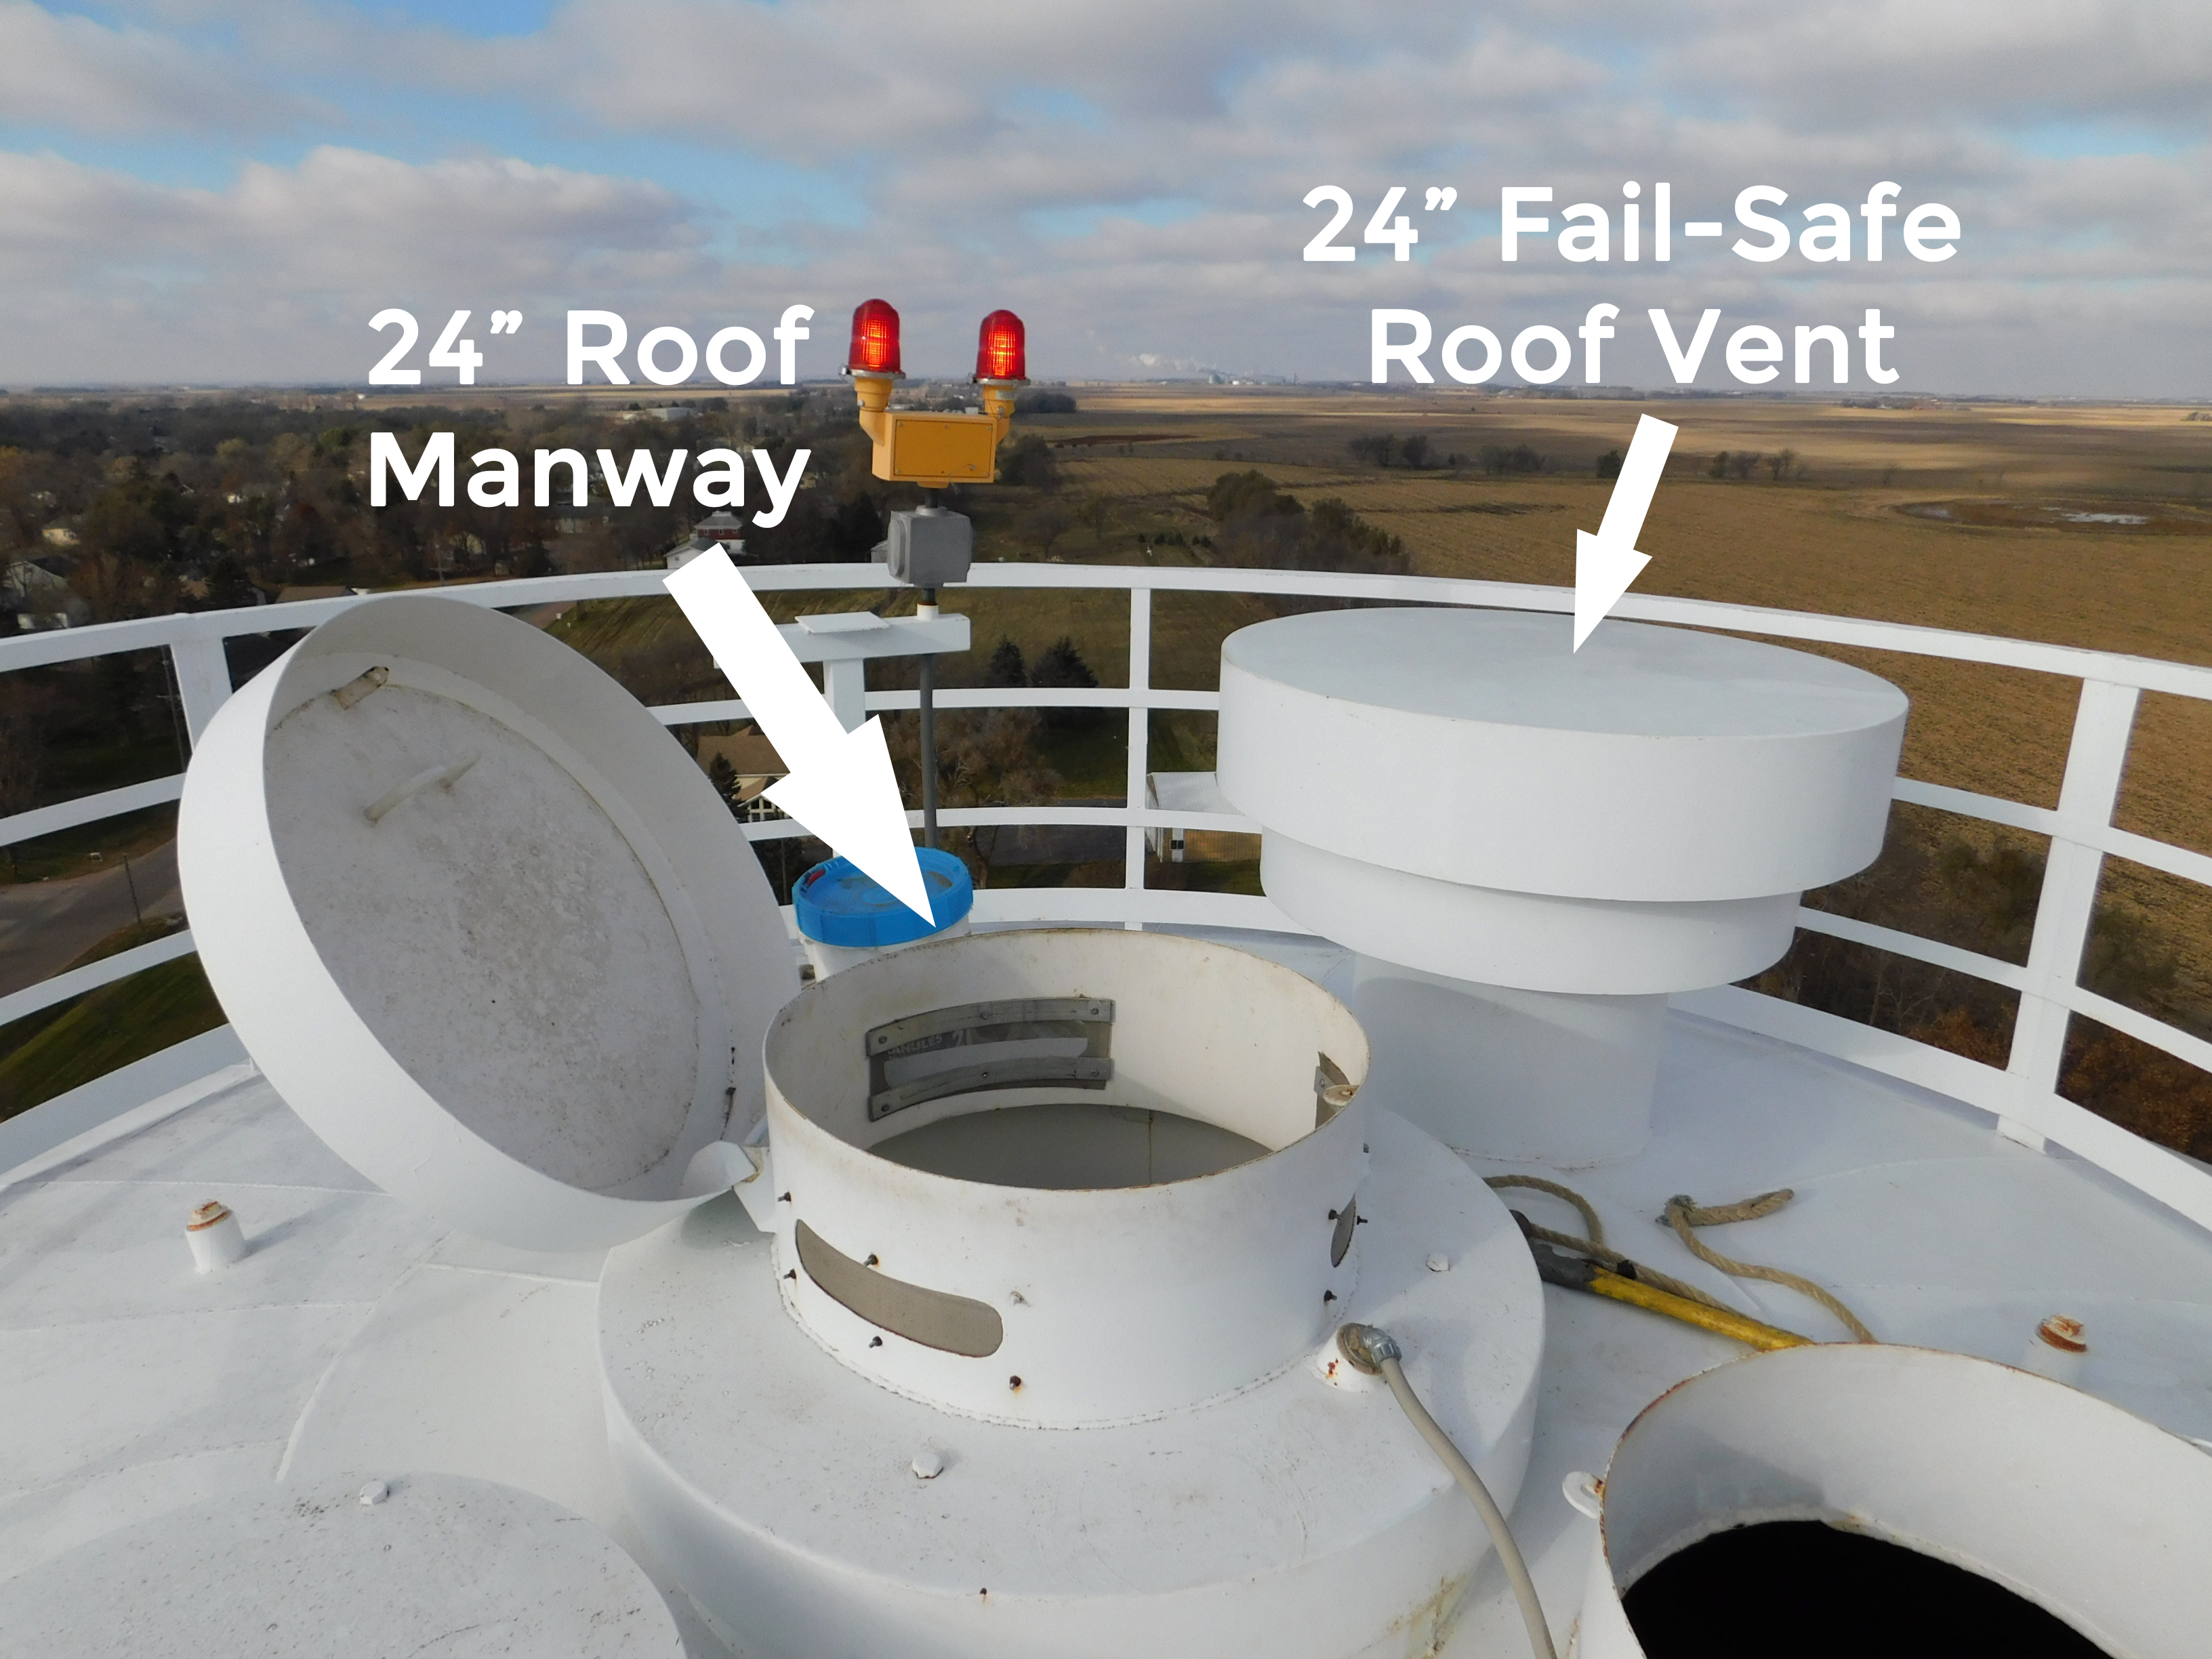 Roof Manway and Fail-Safe Vent